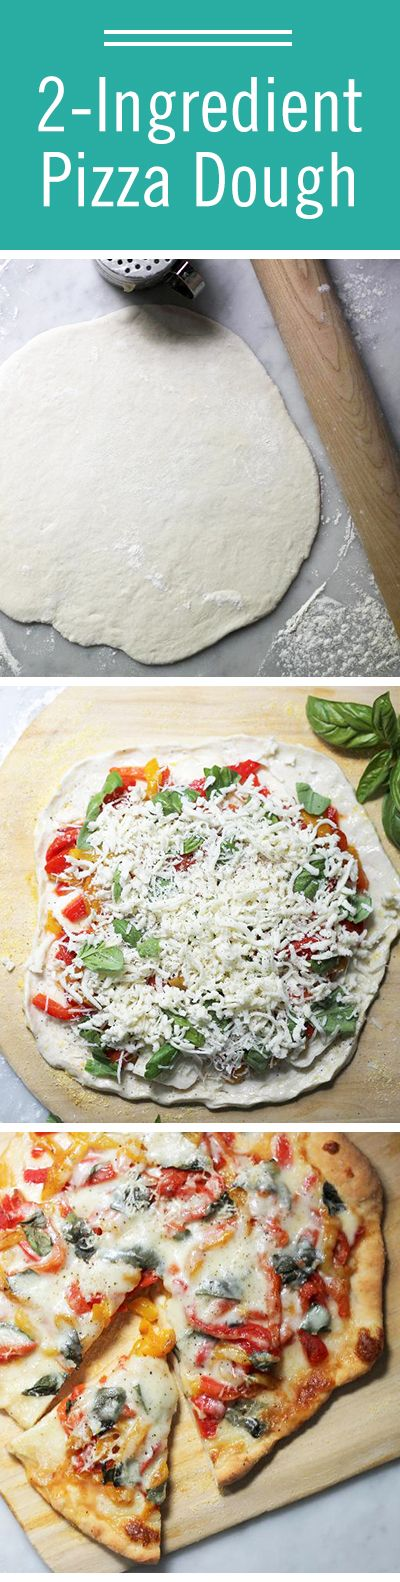 Forget about ordering out tonight — make your own pizza dough with only 2 ingredients! All you need is Greek yogurt and self rising flour. DIY pizza night would make a great summer activity for the kids.